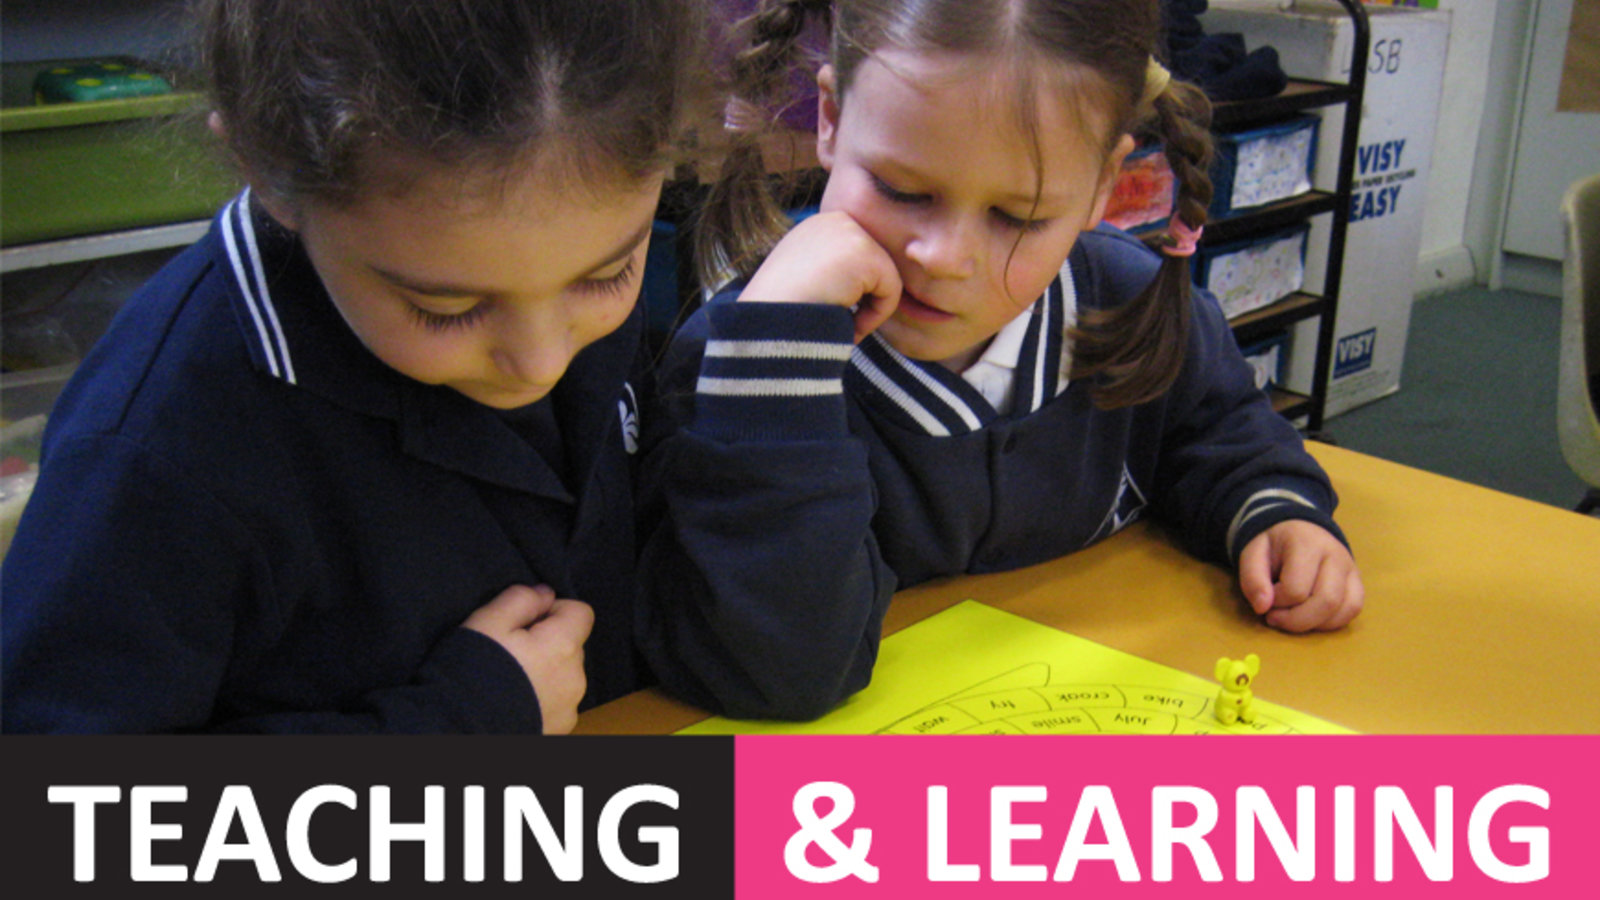 Teaching & Learning: Teaching Numeracy